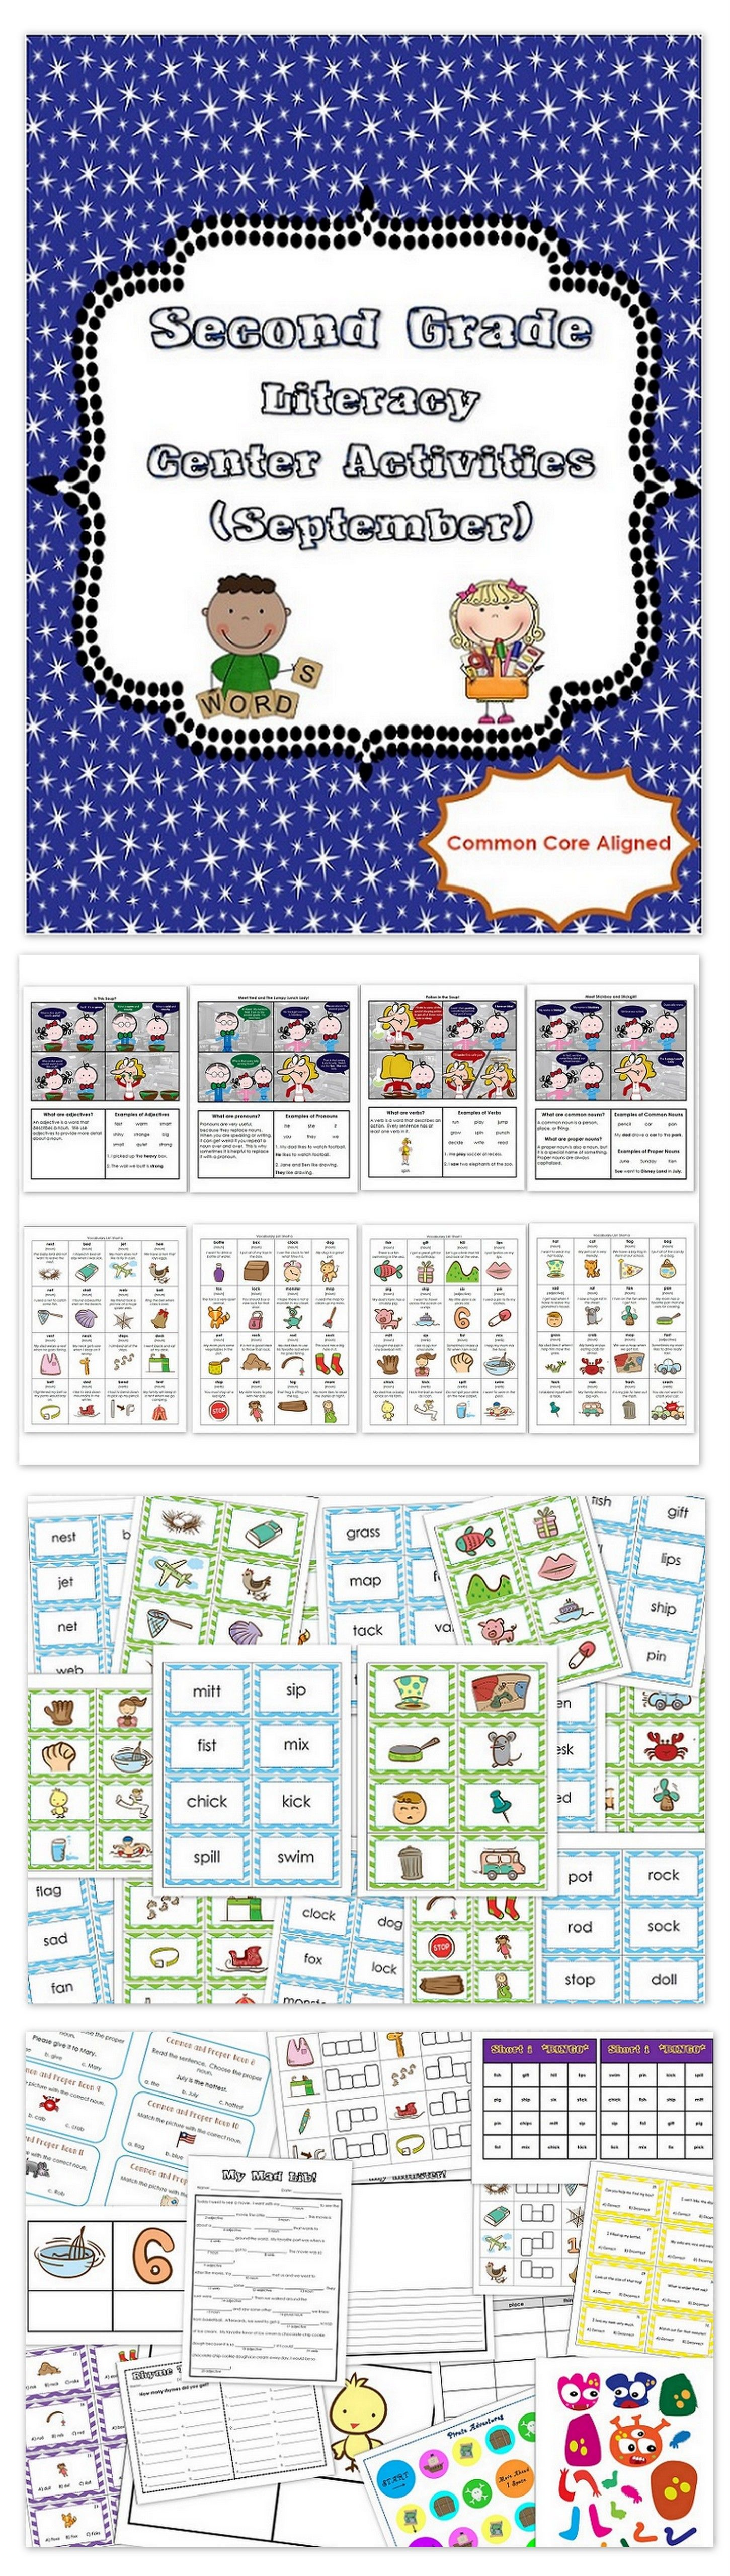 2nd Grade Literacy Centers Activity Pack September